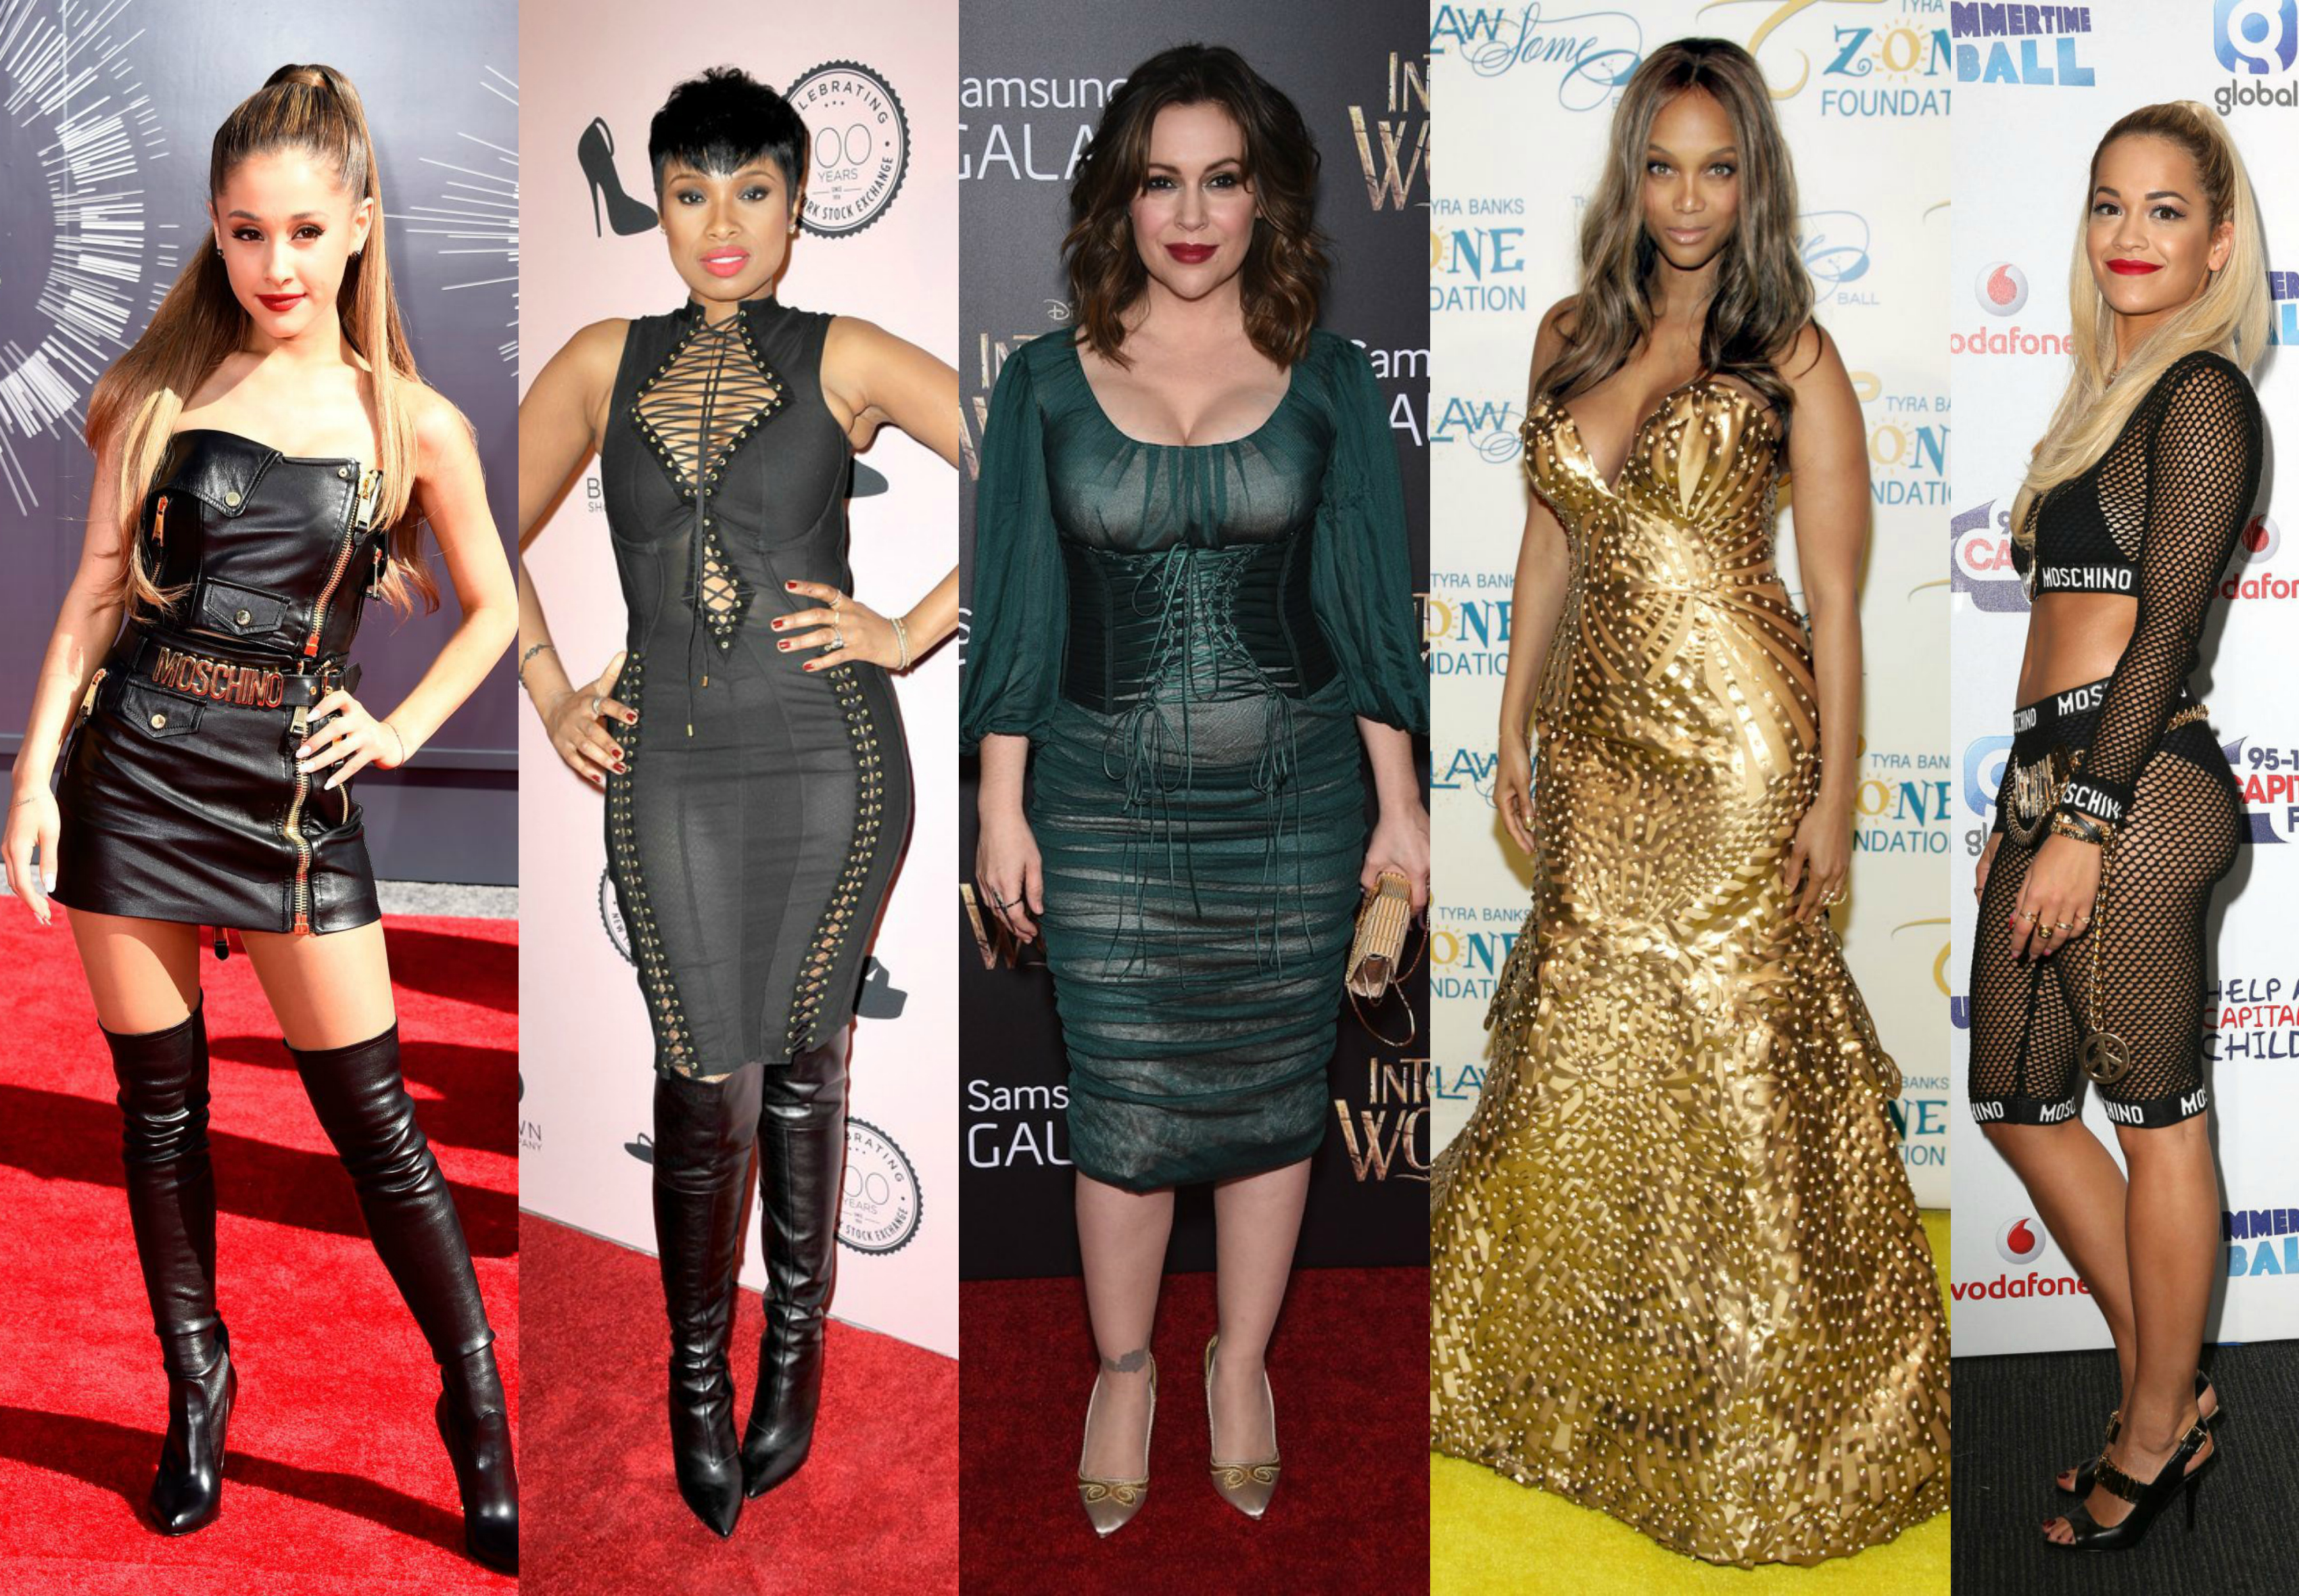 worst celebrity style of 2014